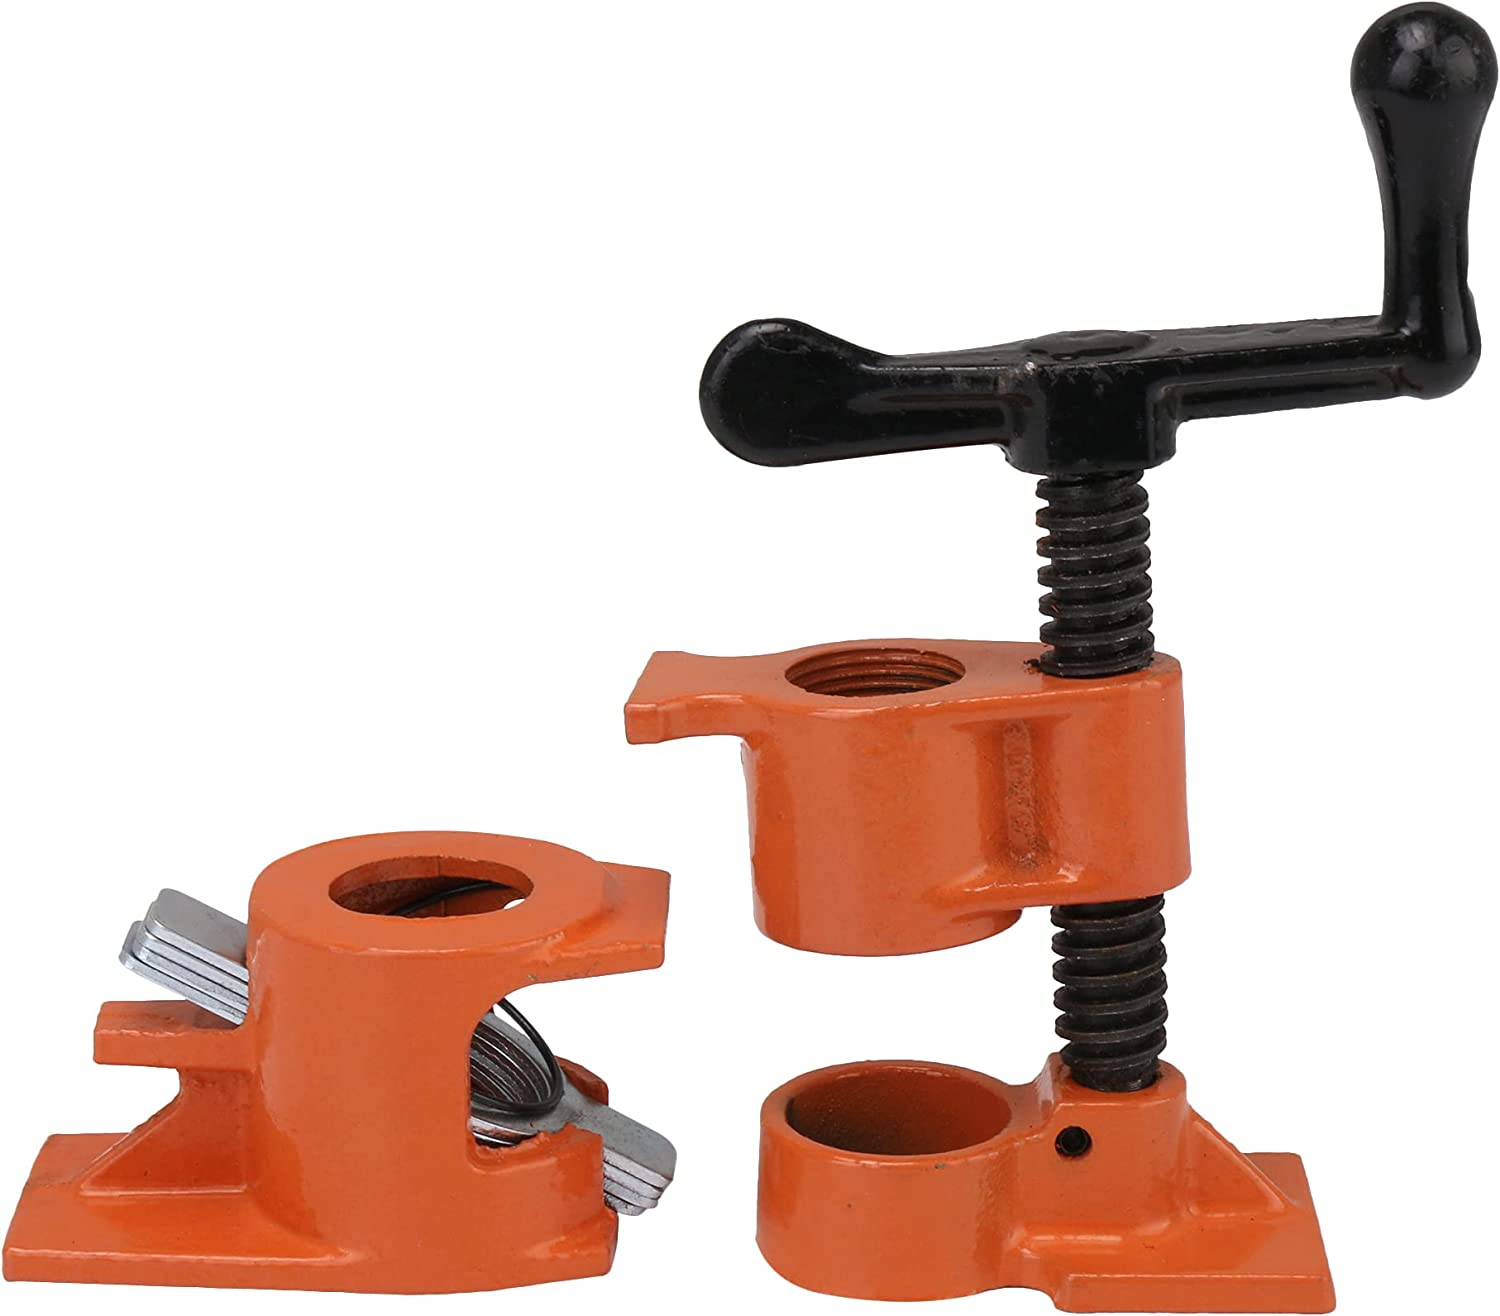 CNBTR Iron Round Mouth New product!! Quick Release 3 Plumbing Manual Gluing 4